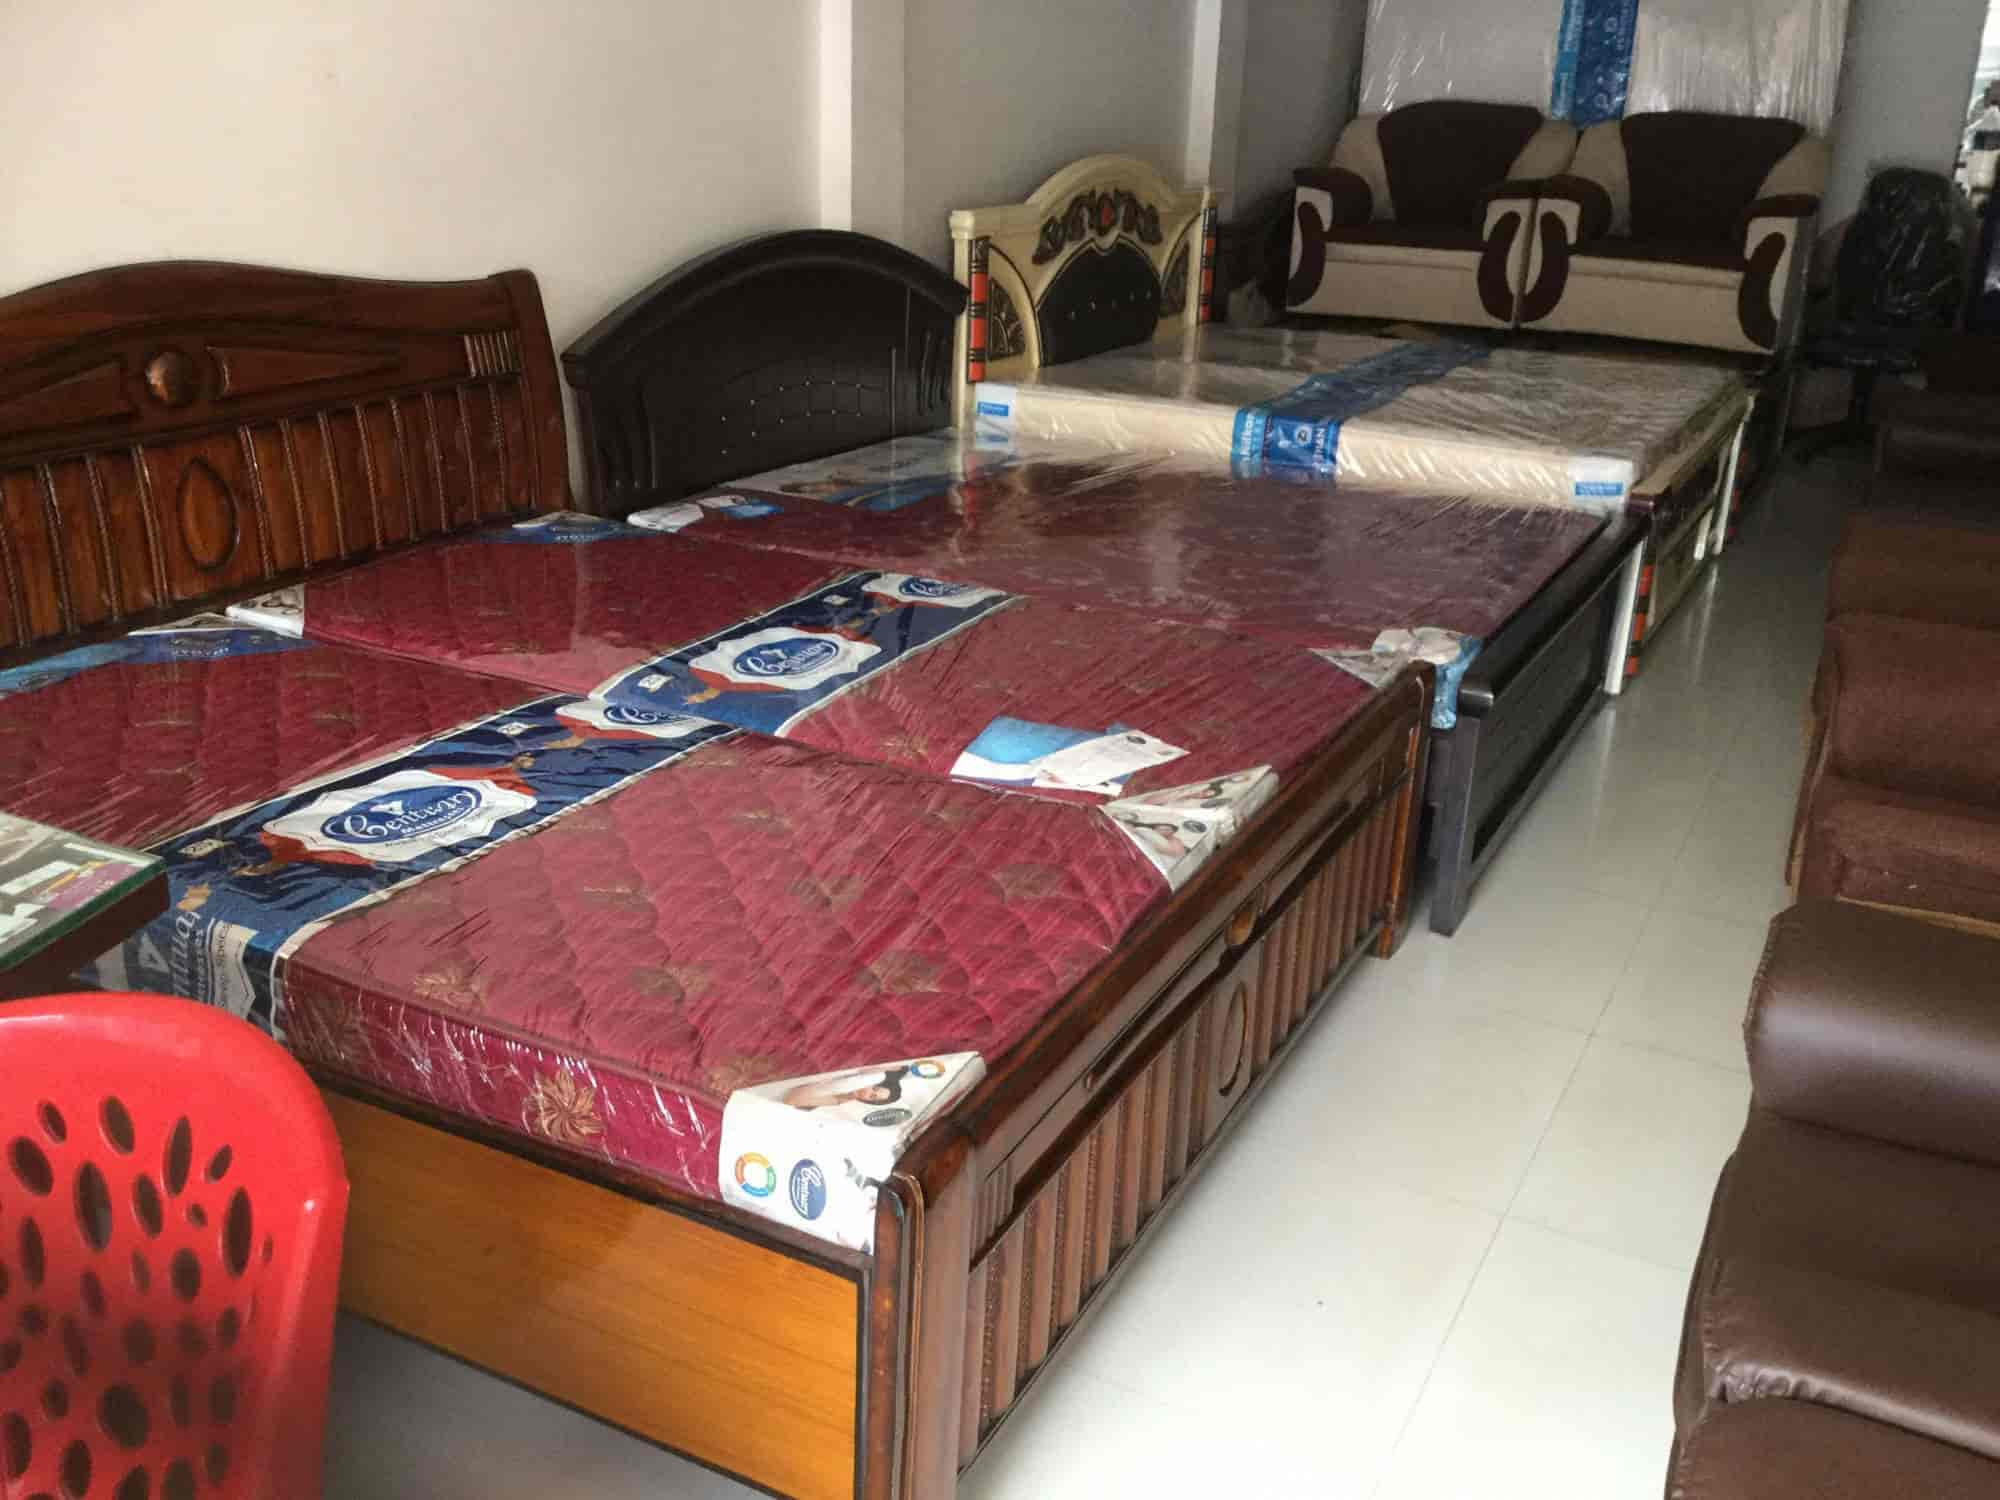 New model furniture reviews trunk road nellore 3 ratings justdial